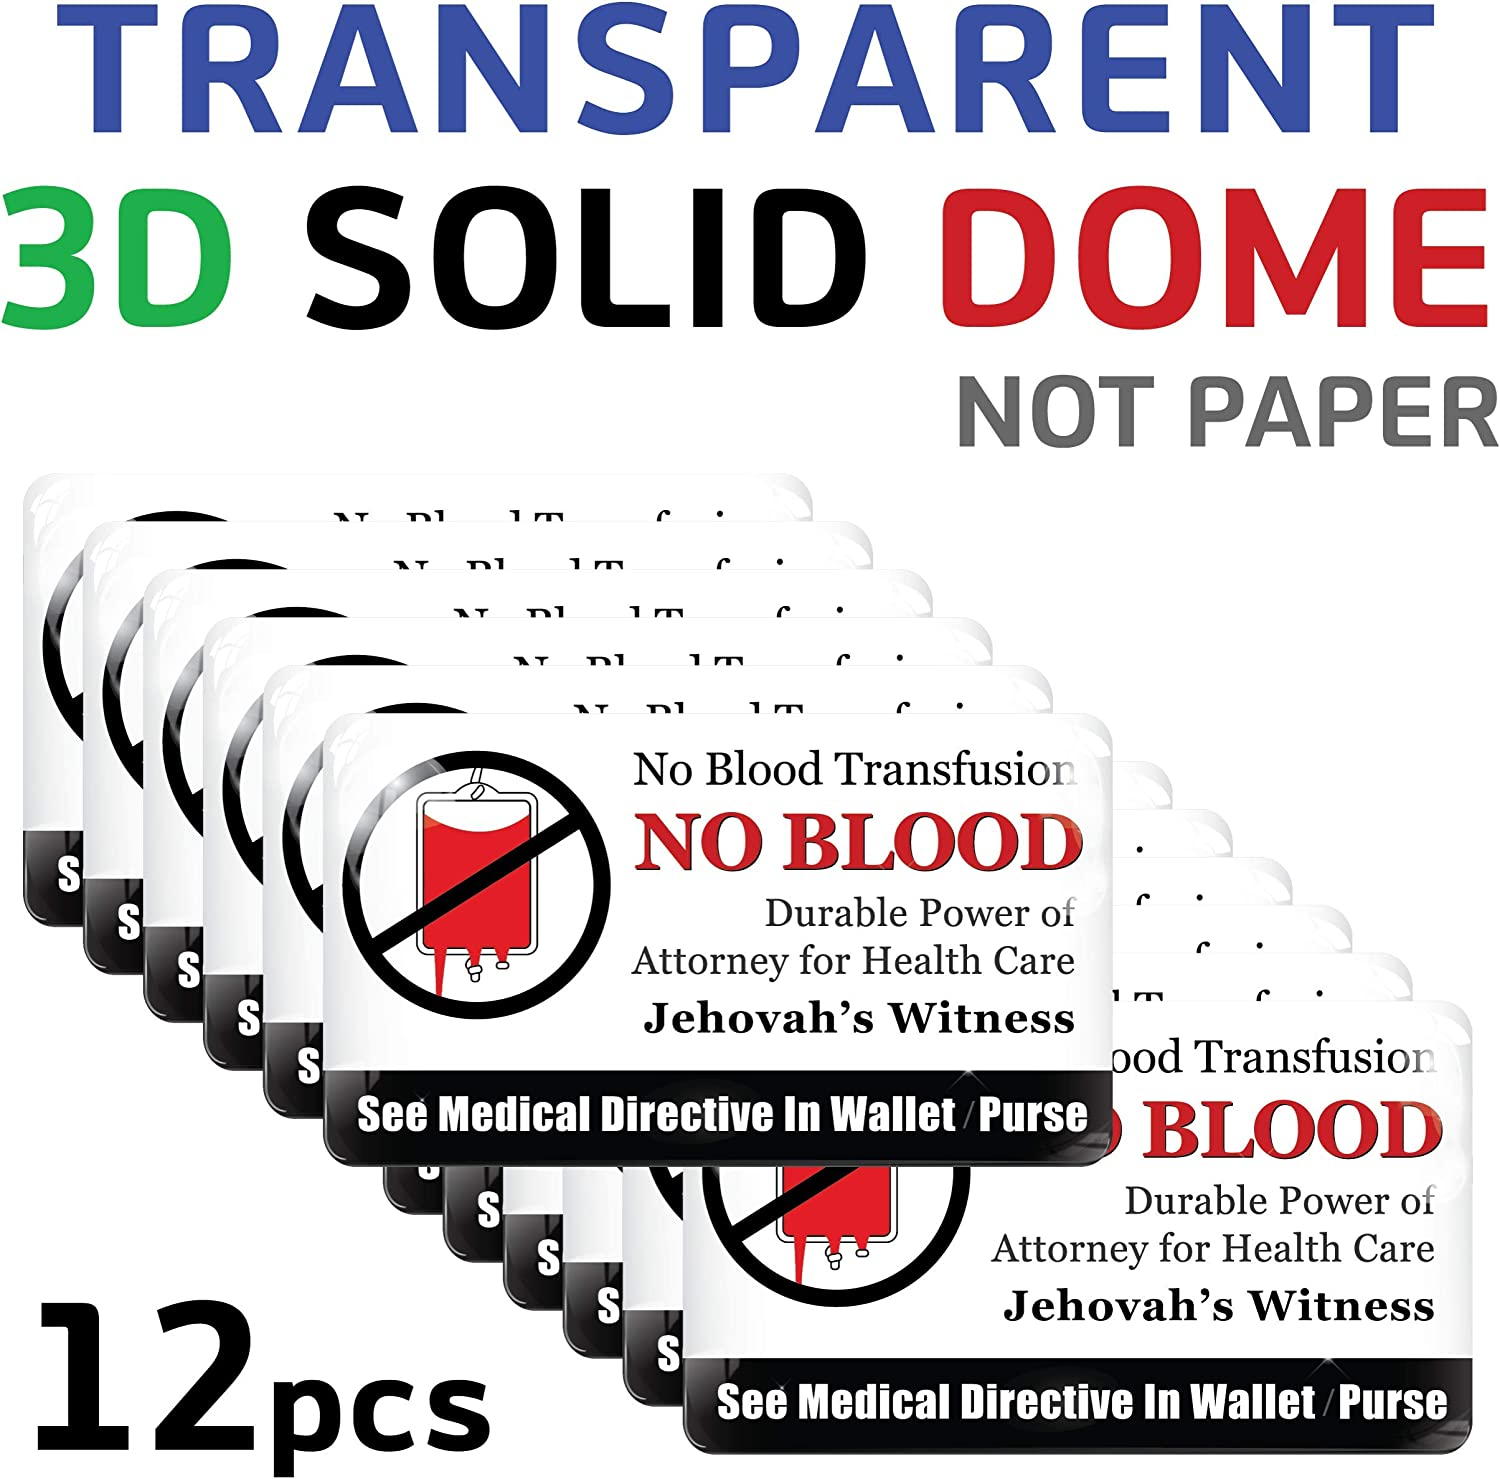 Jehovahs Witnesses Ministry Supplies for JW Gifts Men and Women Accessories of Cell Phone JW.org Vongsado -3pcs- No Blood Transfusion Premium 3D Stickers Basic 3